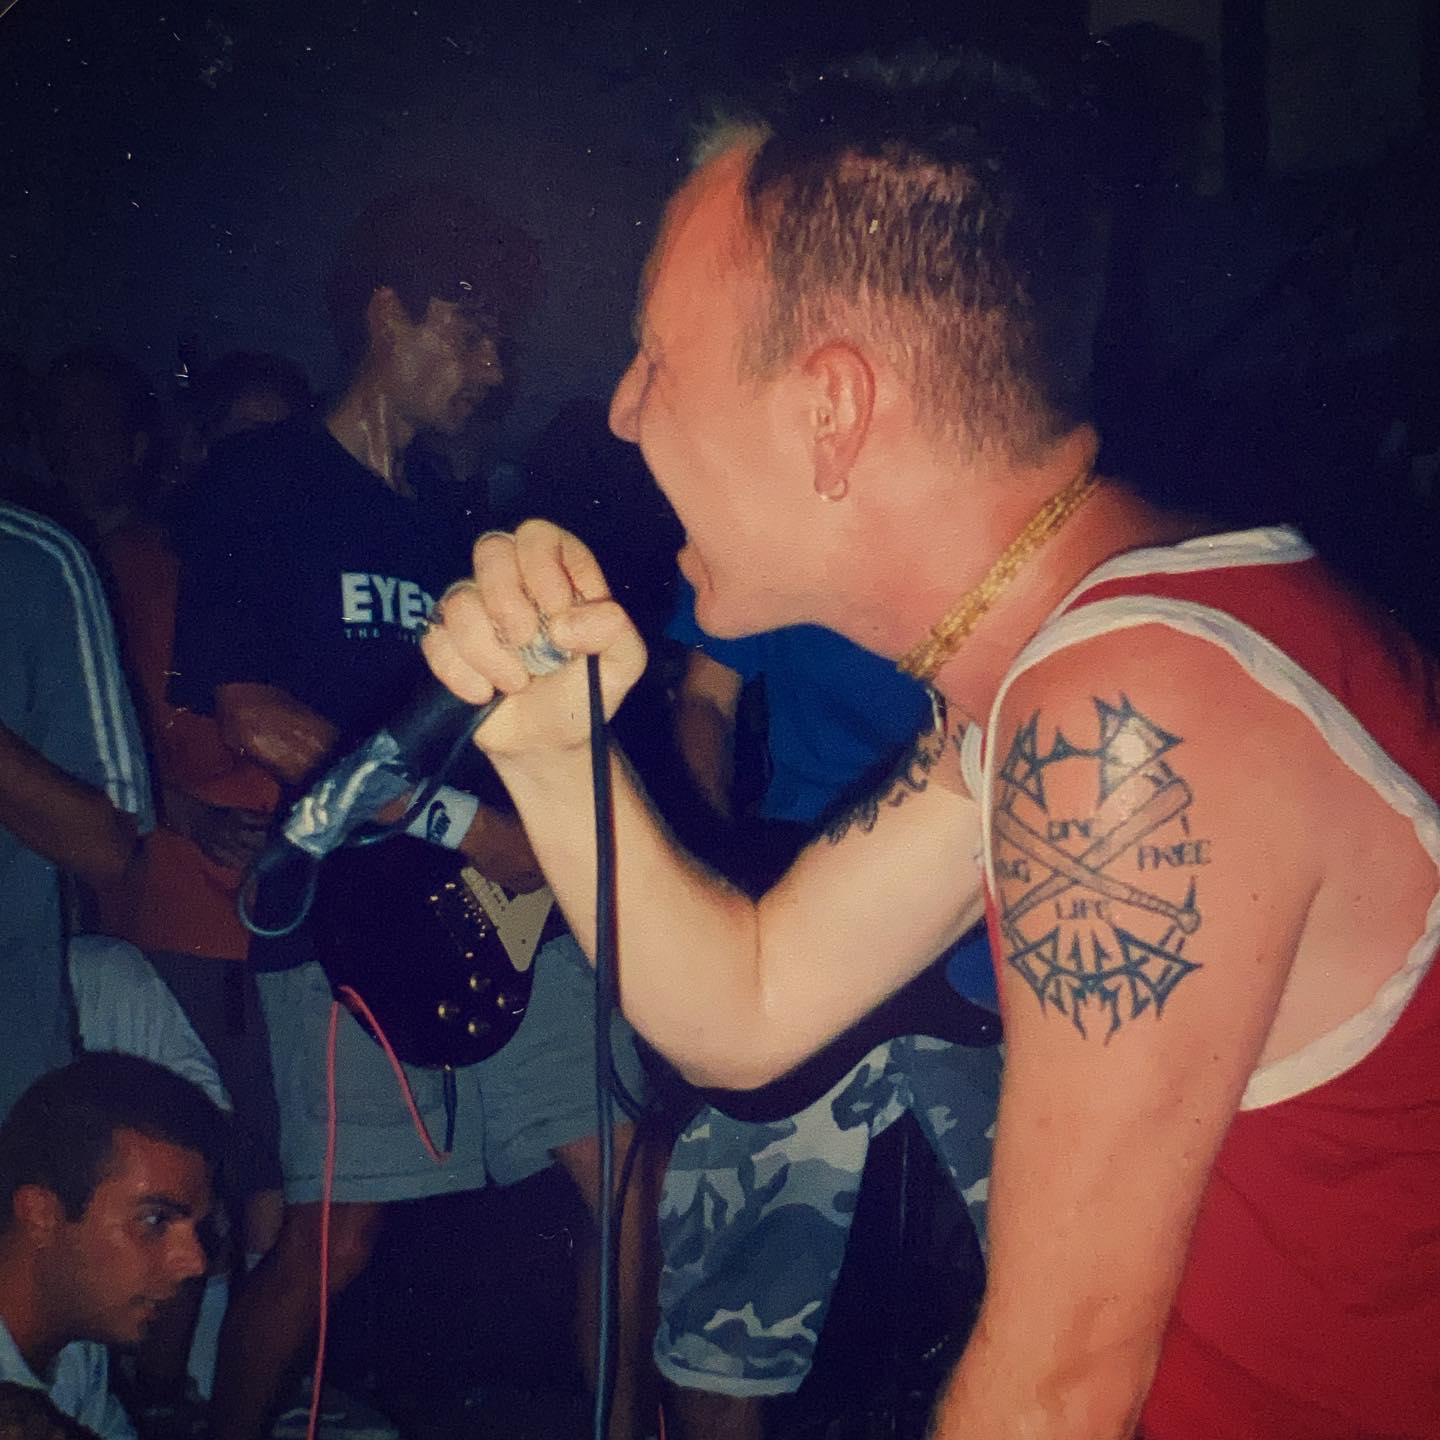 Mainstrike - Hardcore Festival at Vort 'n Vis Ieper (B) - 15/16/17 August 1997 #straightedge #hardcore #youthcrew @mainstrikeofficial #gigpic by @twentylandcrew